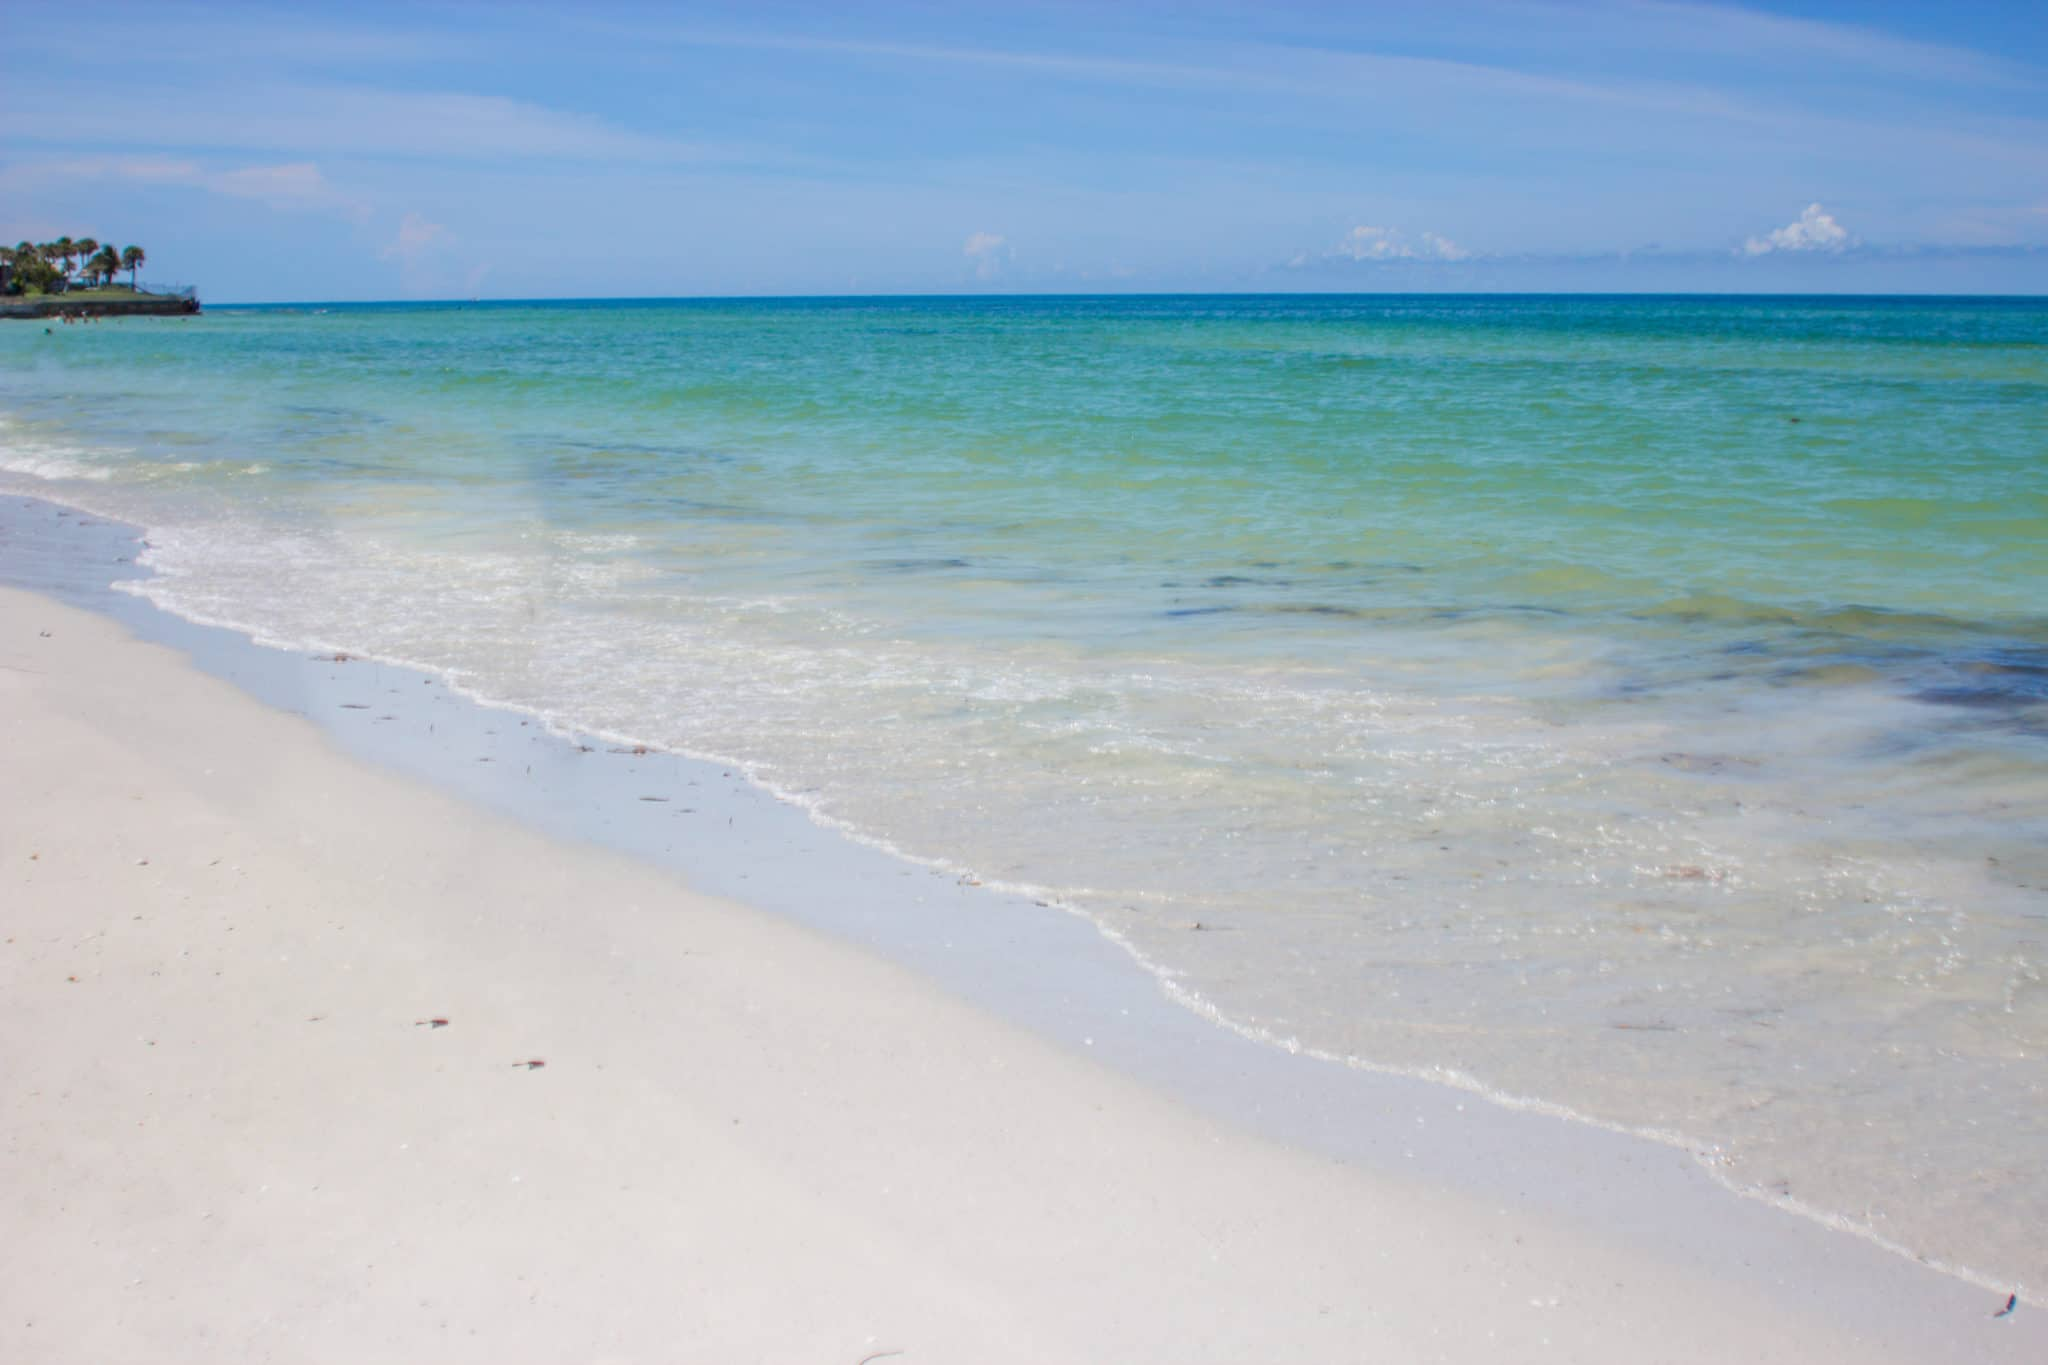 Photography of siesta key beach in Sarasota Florida during the day